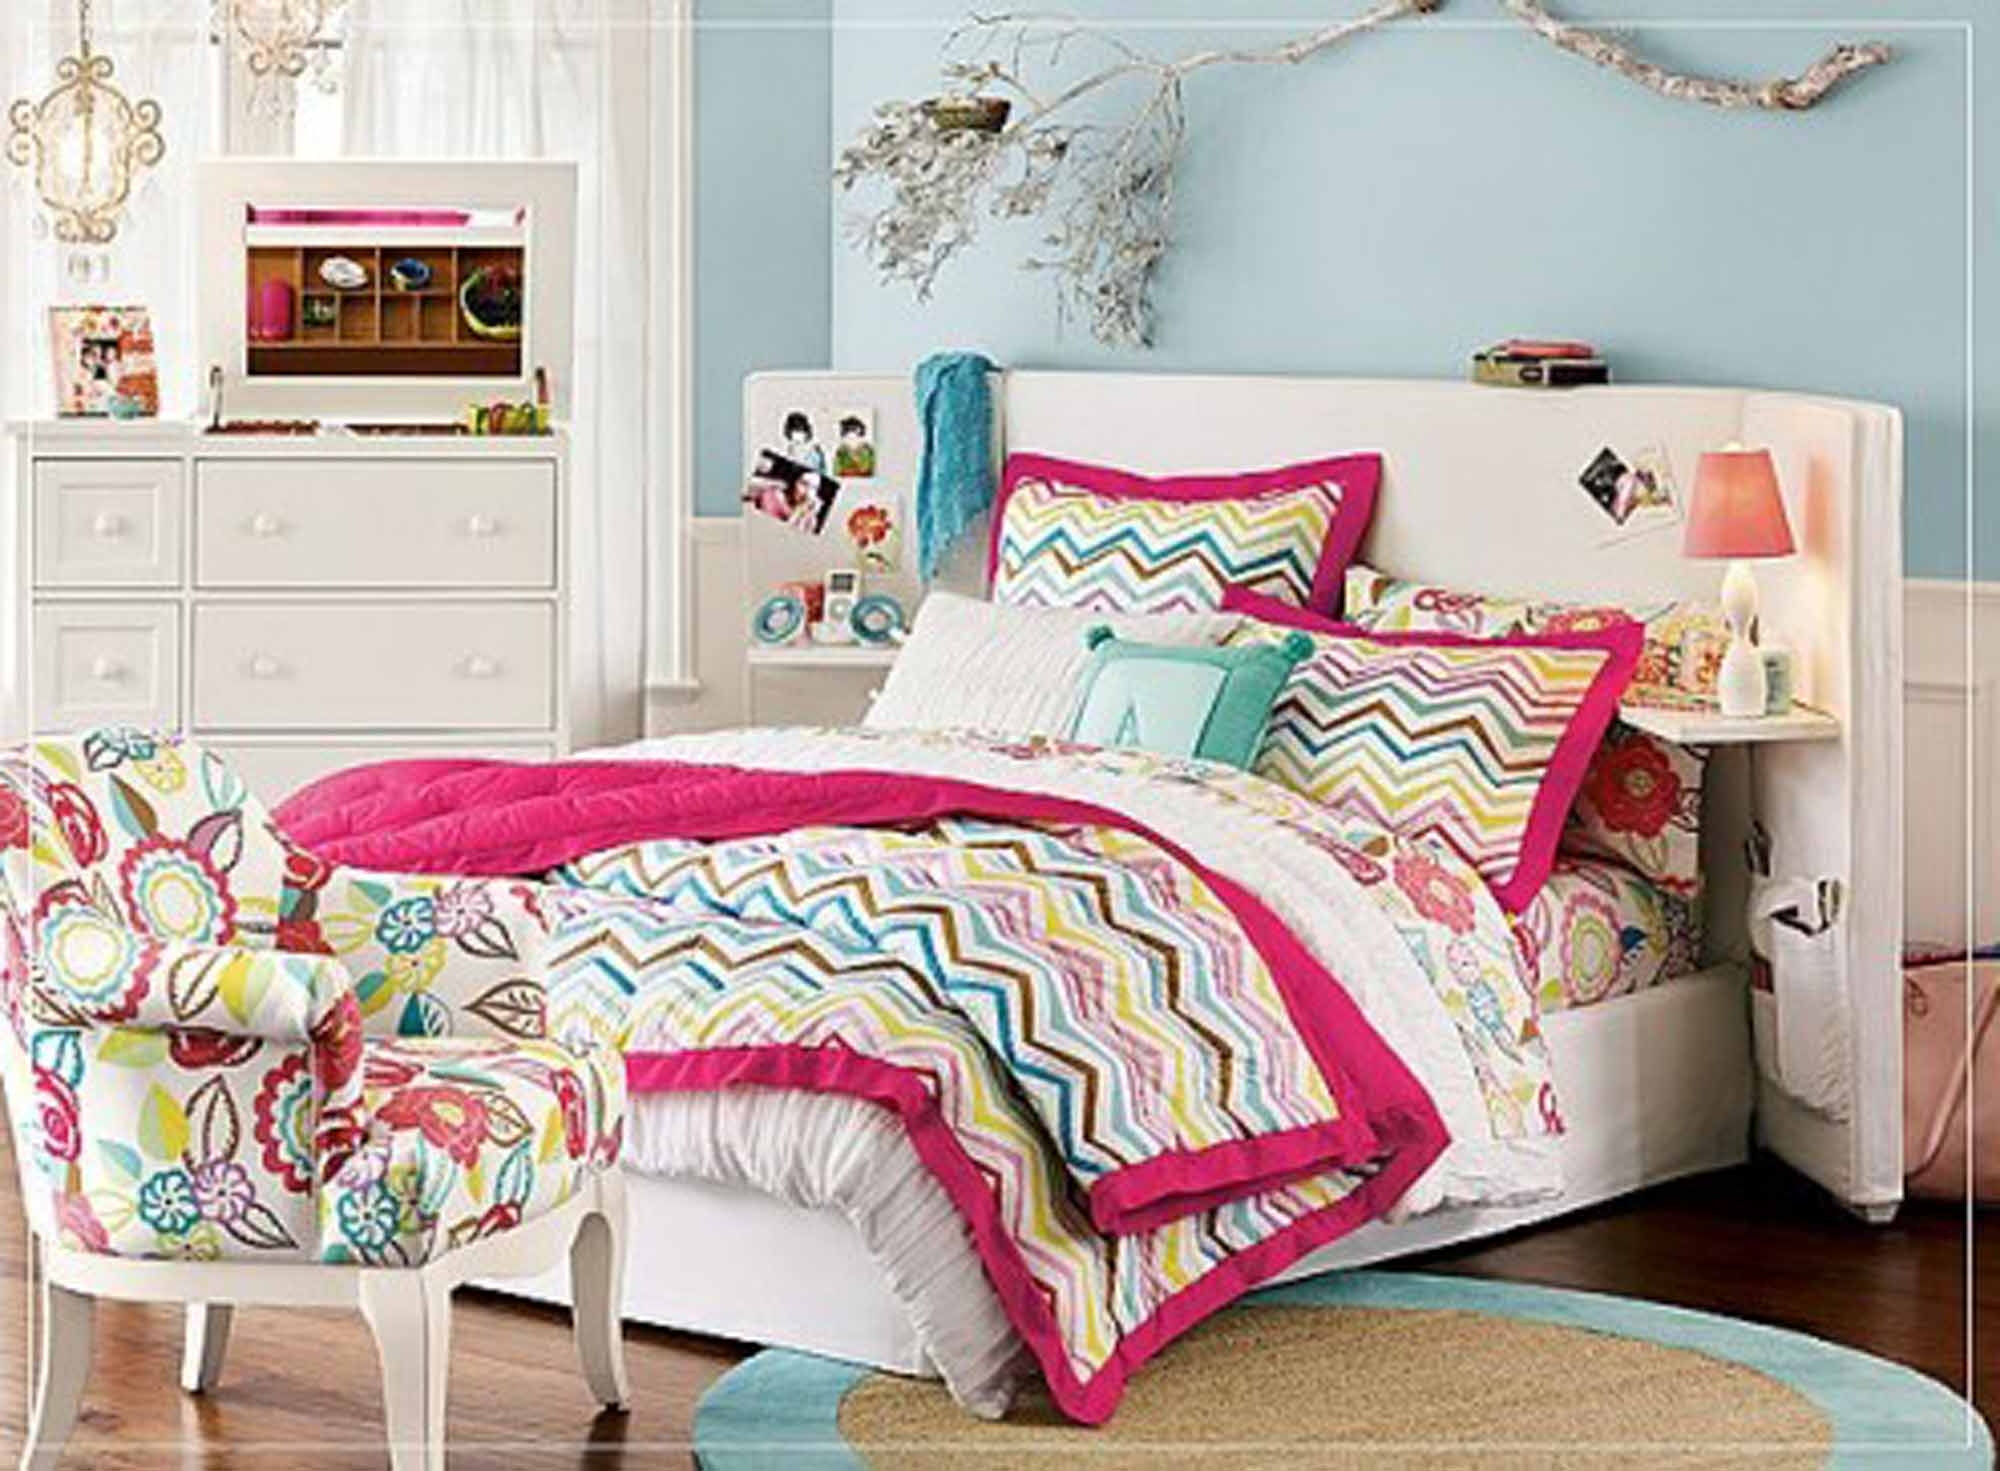 Best ideas about Girl Bedroom Ideas . Save or Pin Teen Girl Bedroom Design Ideas Inspire You Now.